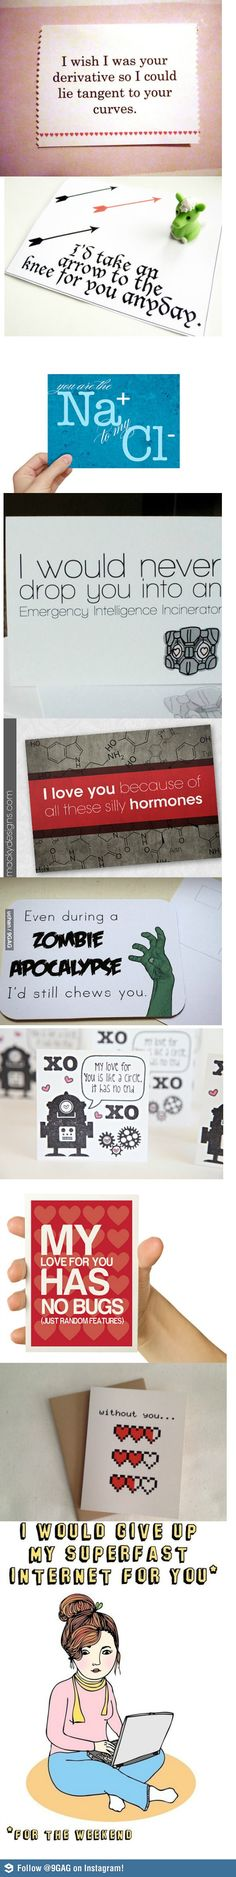 Love these! Thought I found THE perfect valentine for Dave, but now I must find the zombie or give up the internet one for next year!